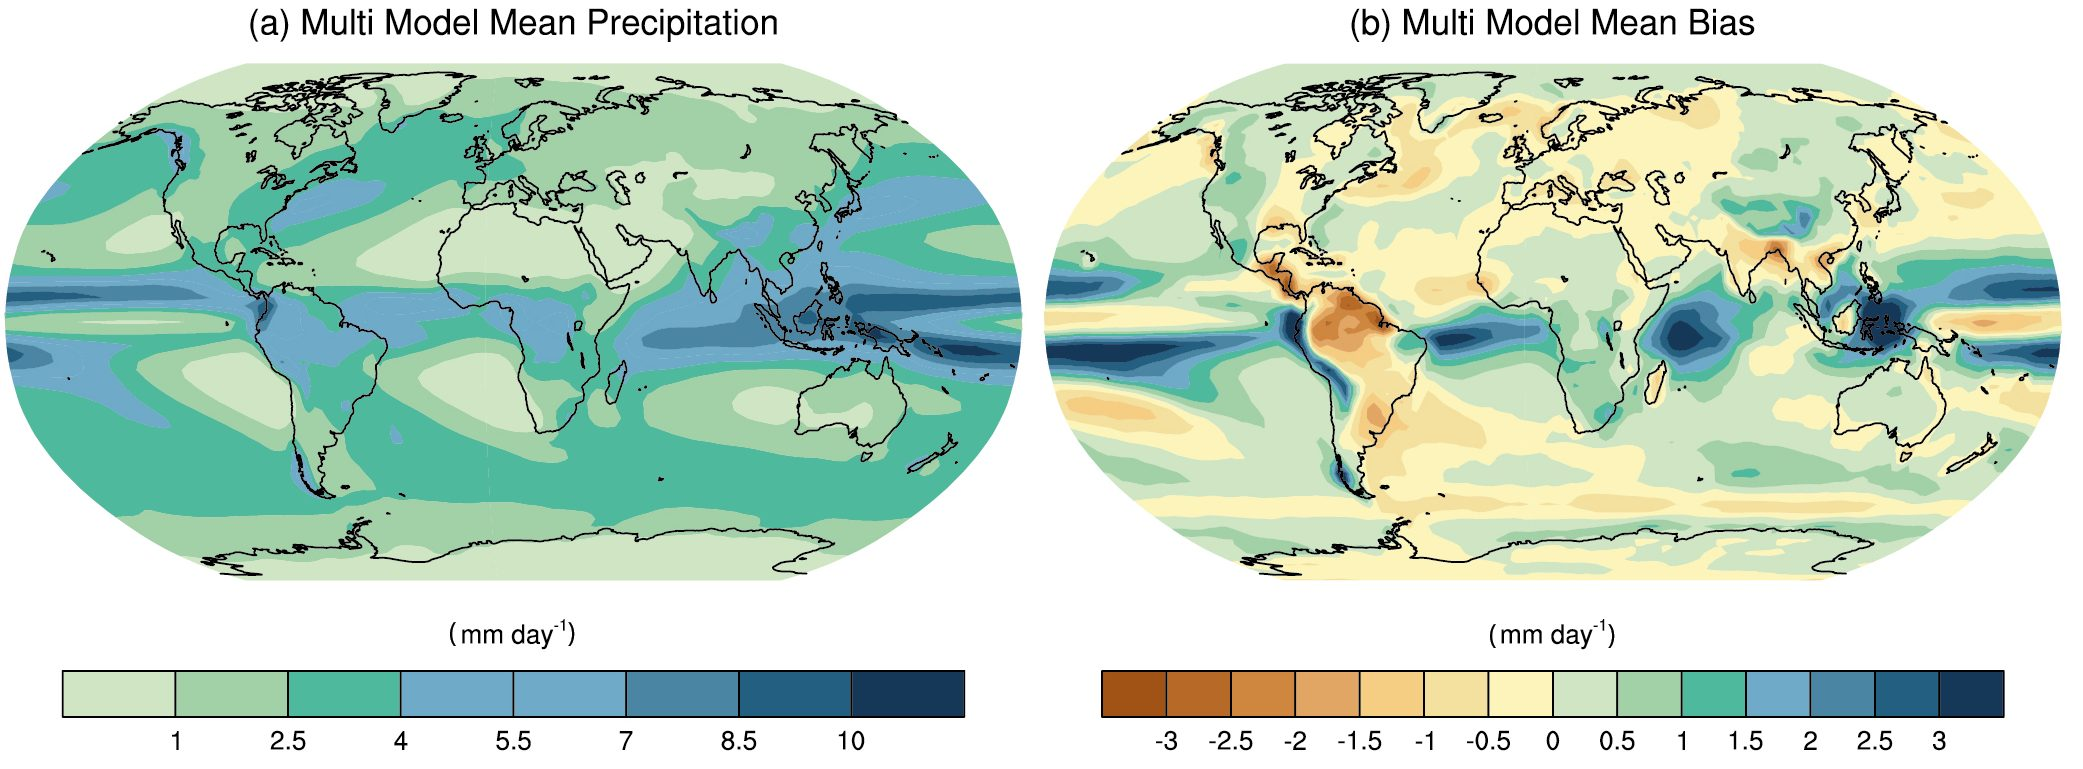 As Fig. 3 but for annual mean precipitation.